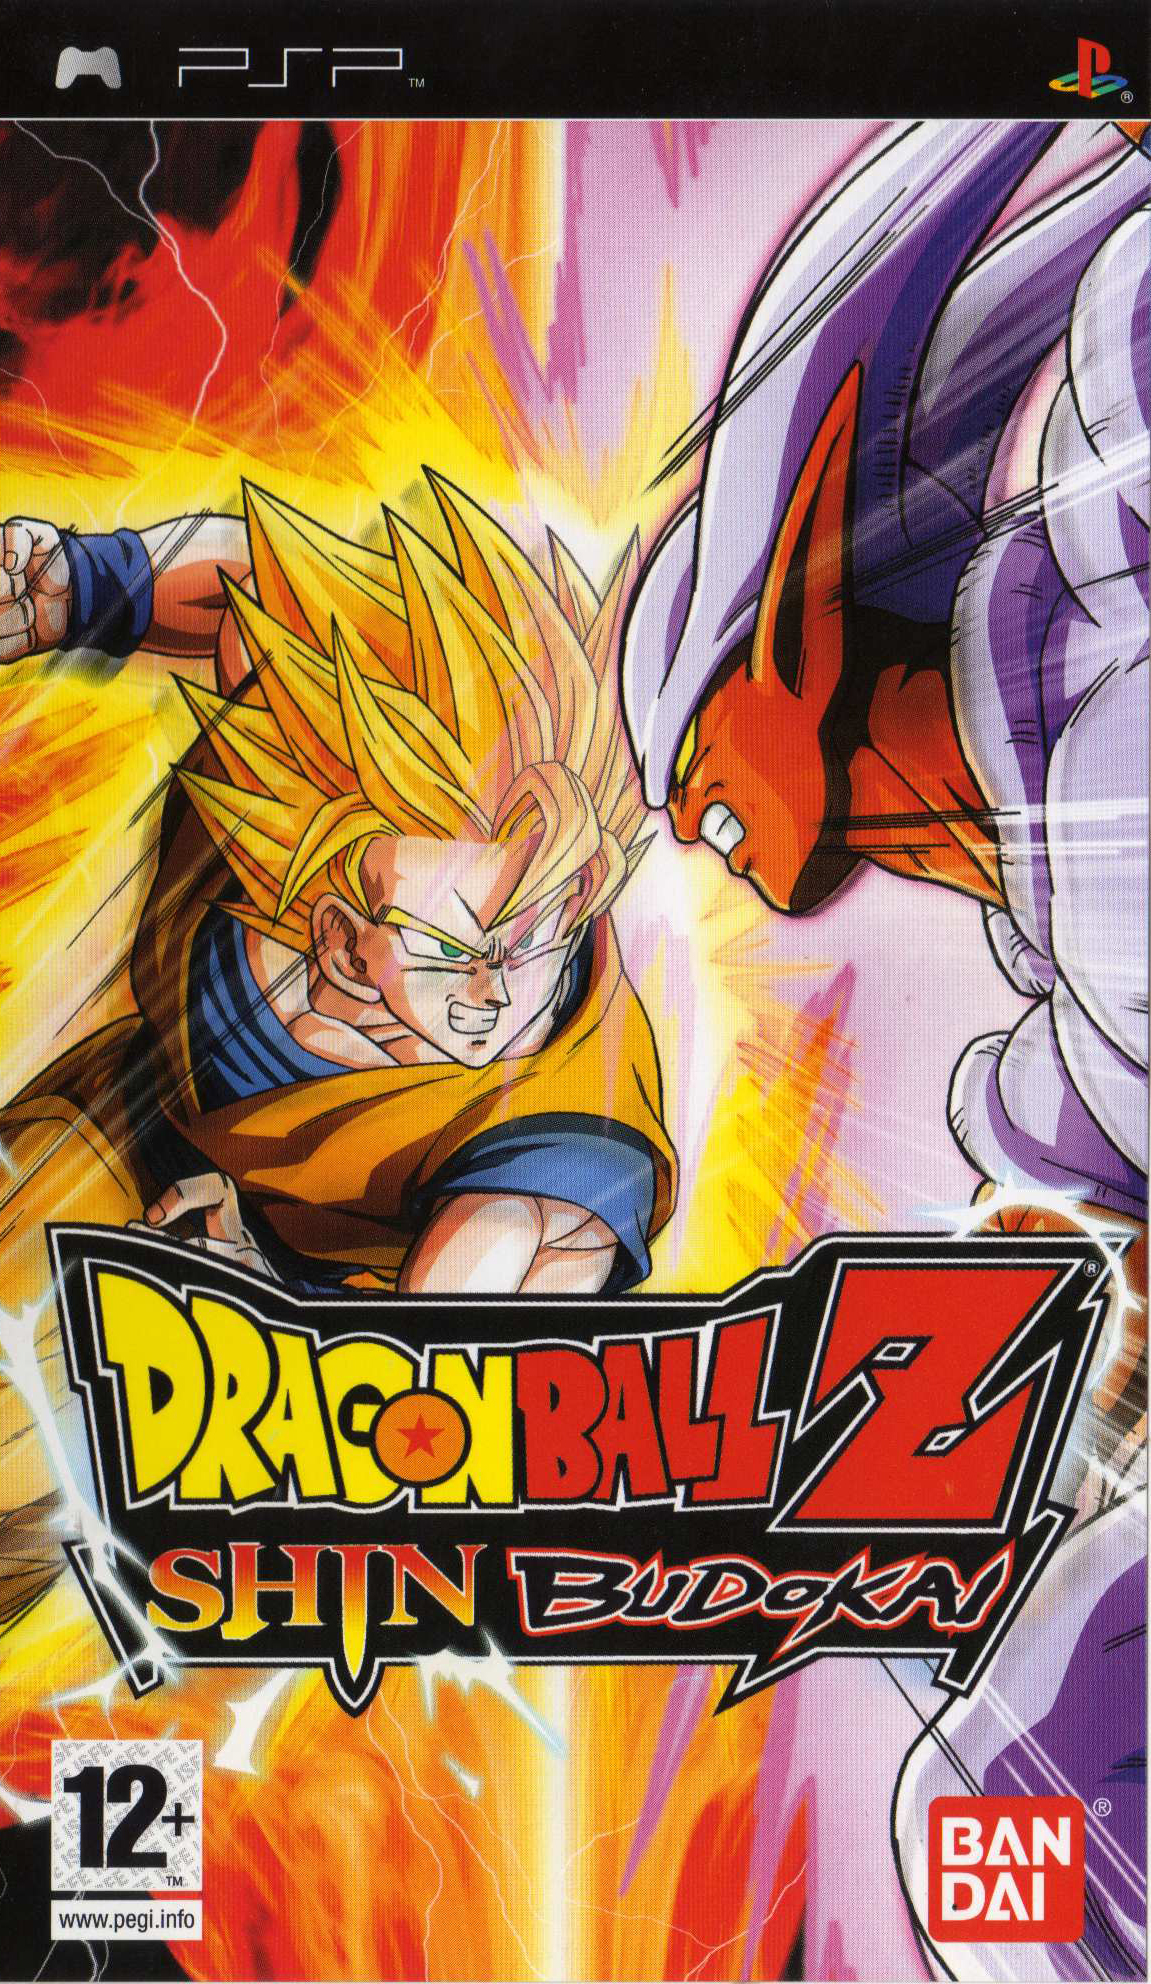 Dragon ball z shin budokai ppsspp emulator wiki - Images dragon ball z ...